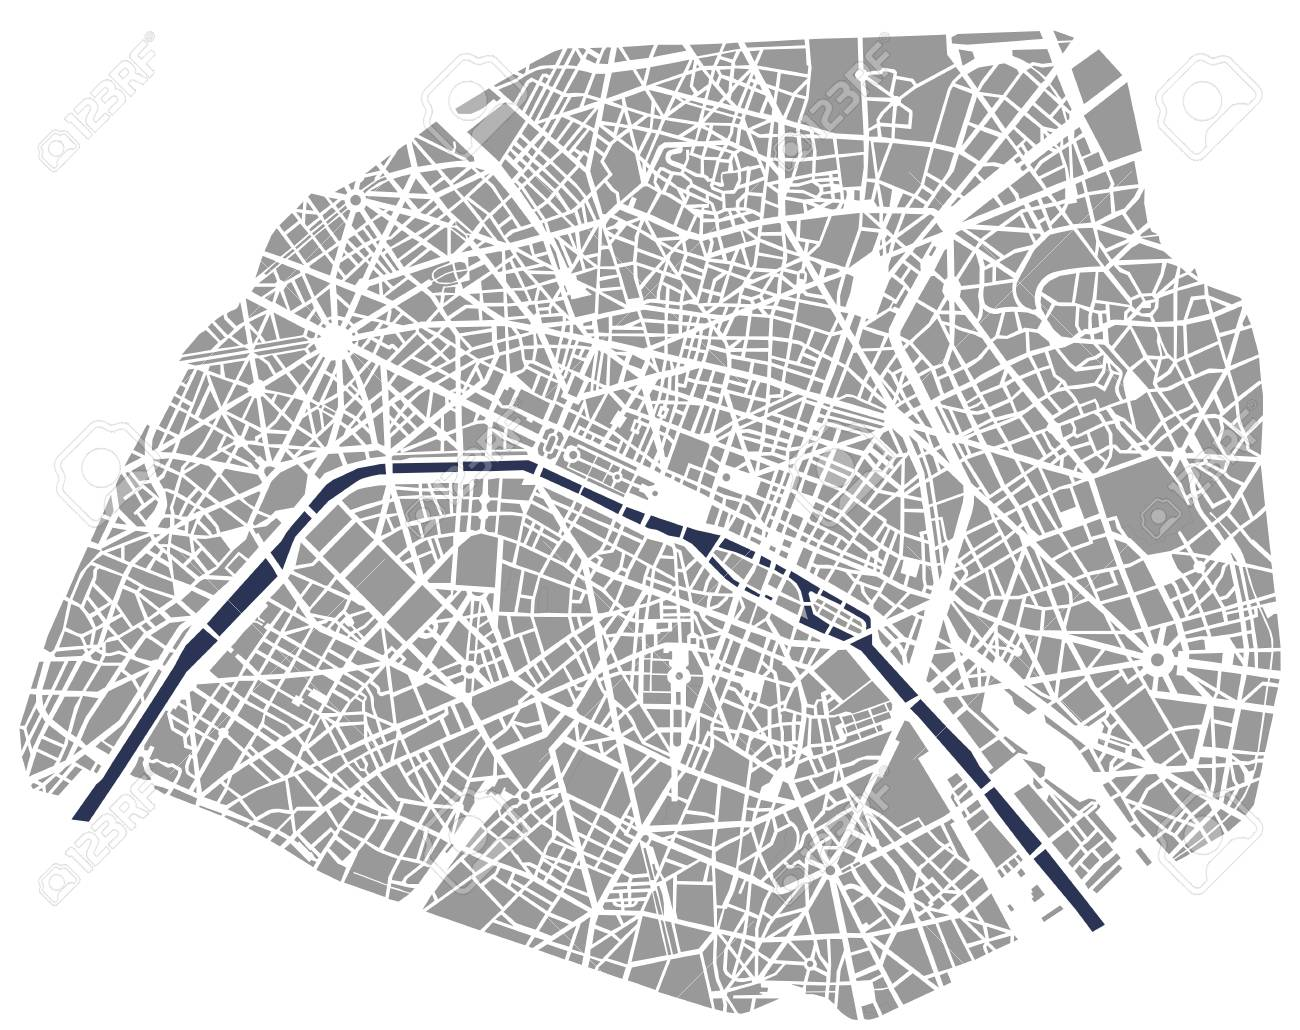 illustration map of the city of Paris, France - 91720874